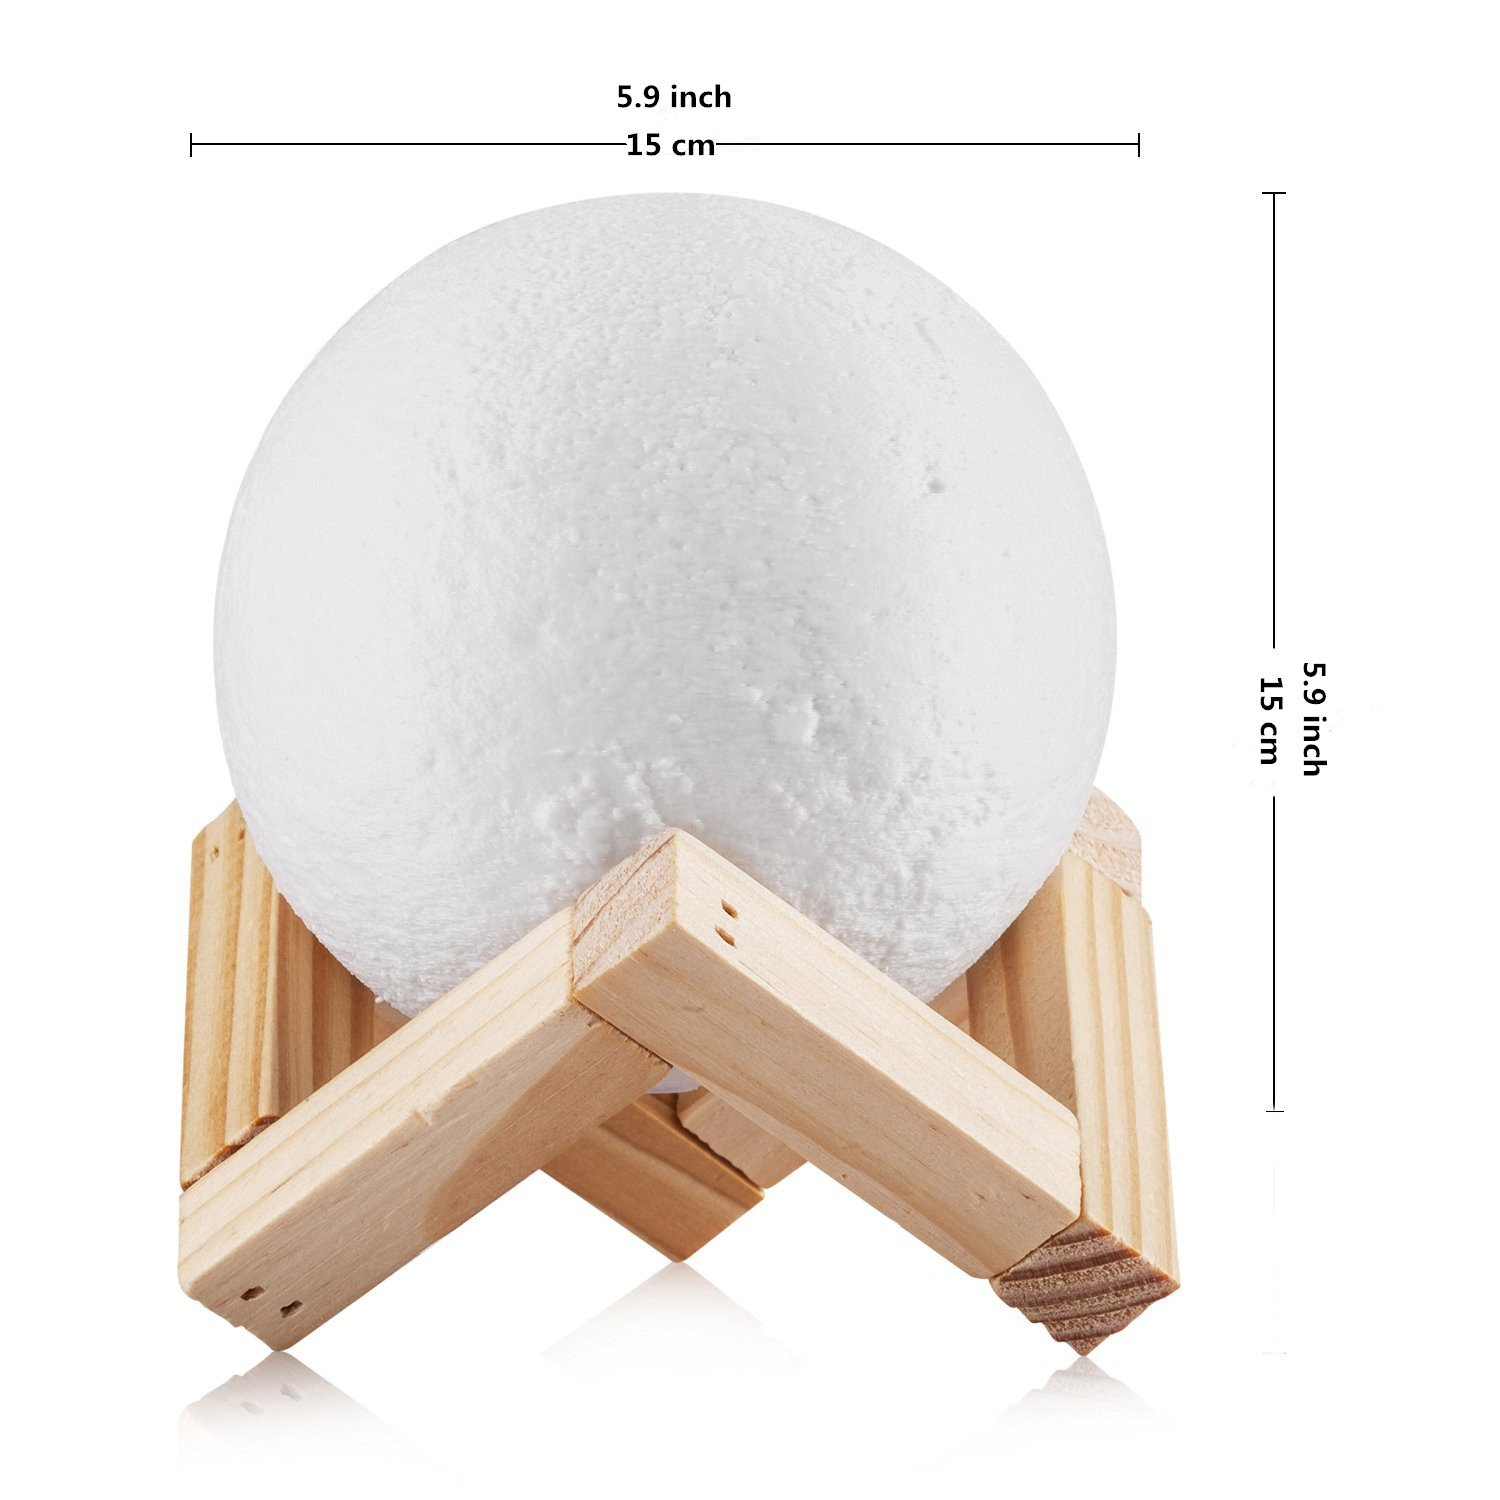 5.9 inch Moon Light 3D Printing Moon Lamp ,Touch Switch Color Changing USB Rechargeable Lunar Night Light Dimmable Table Lamp with Wooden Mount Kids Room Home Decor Christmas Gift